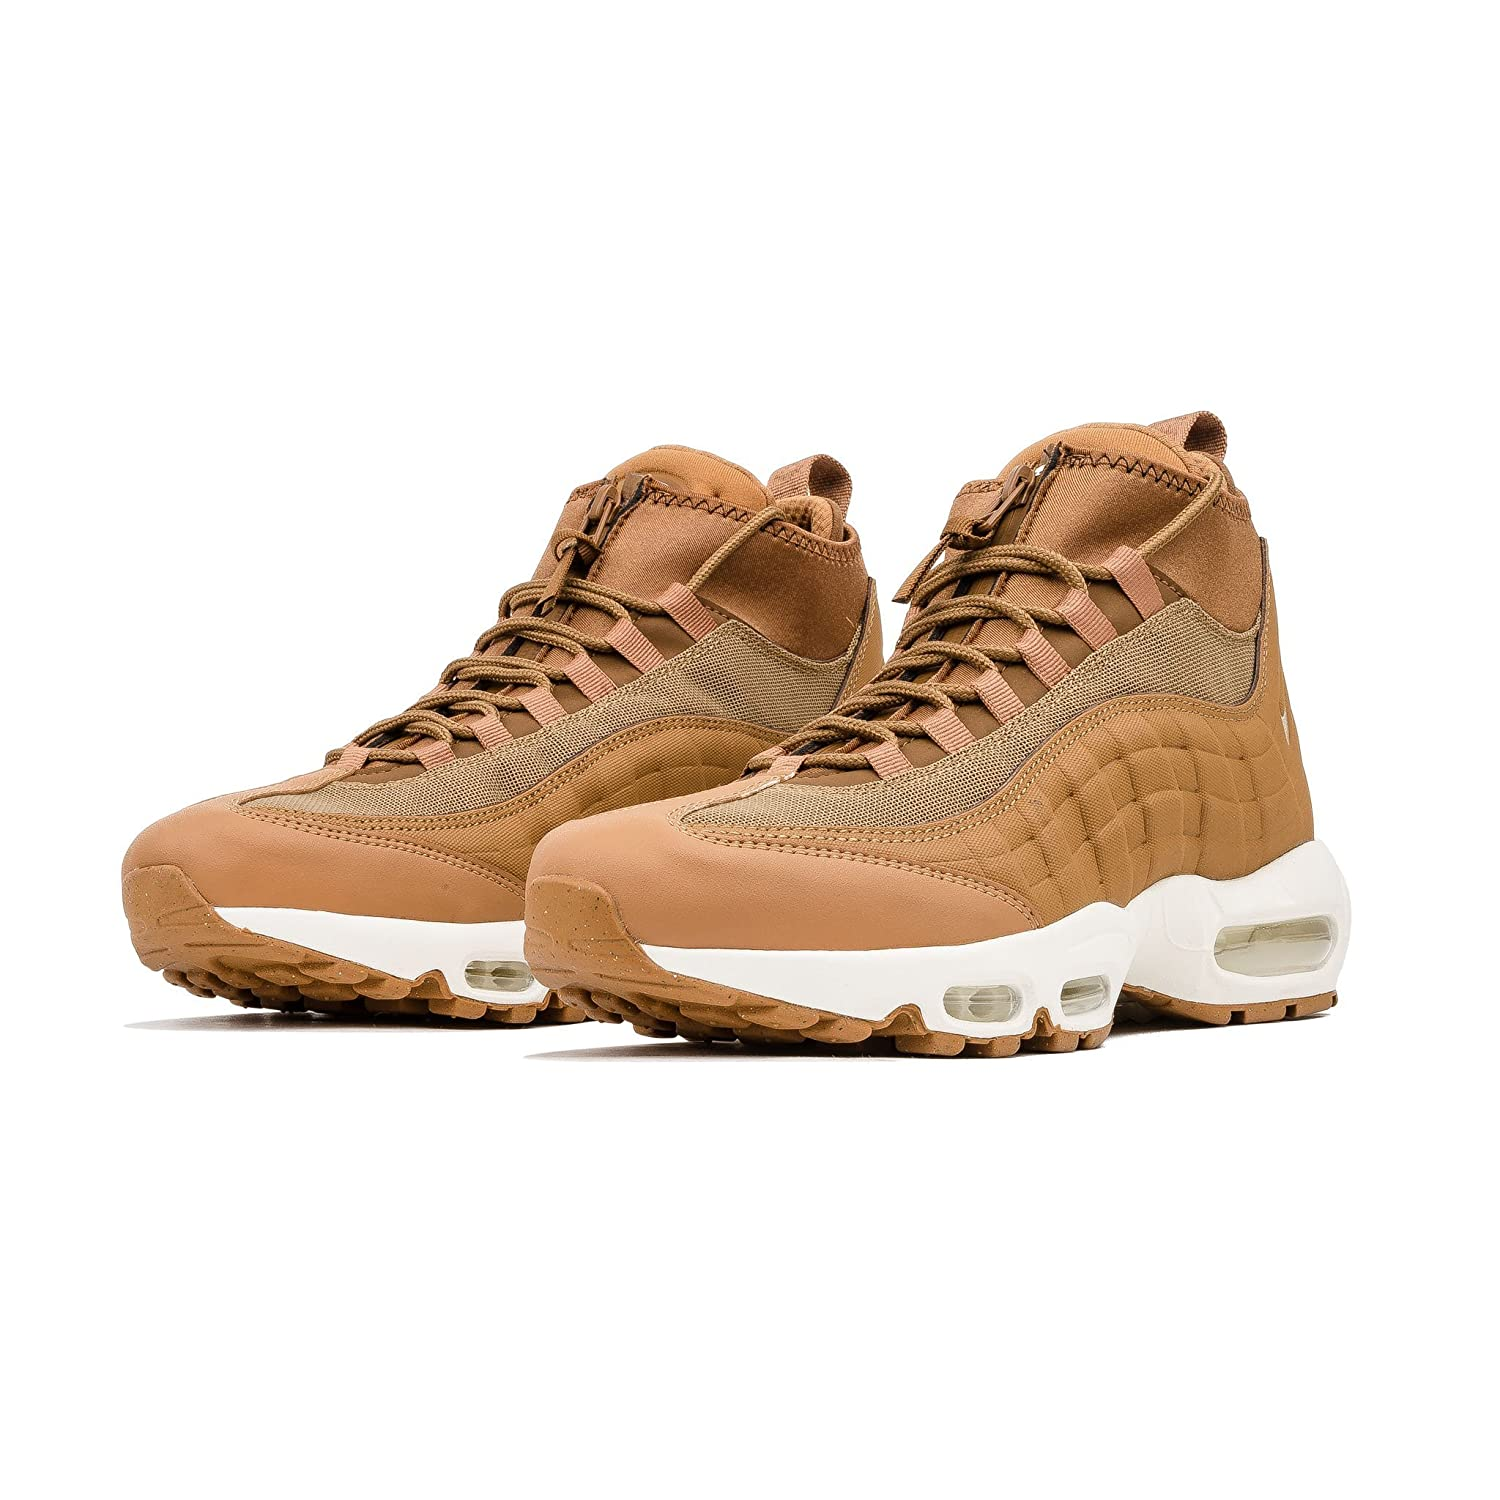 info for 82b31 fe233 Nike Men s Air Max 95 Sneakerboot 806809-201 Flax Flax Ale Brown Sail Boot  (9.5)  Amazon.co.uk  Shoes   Bags